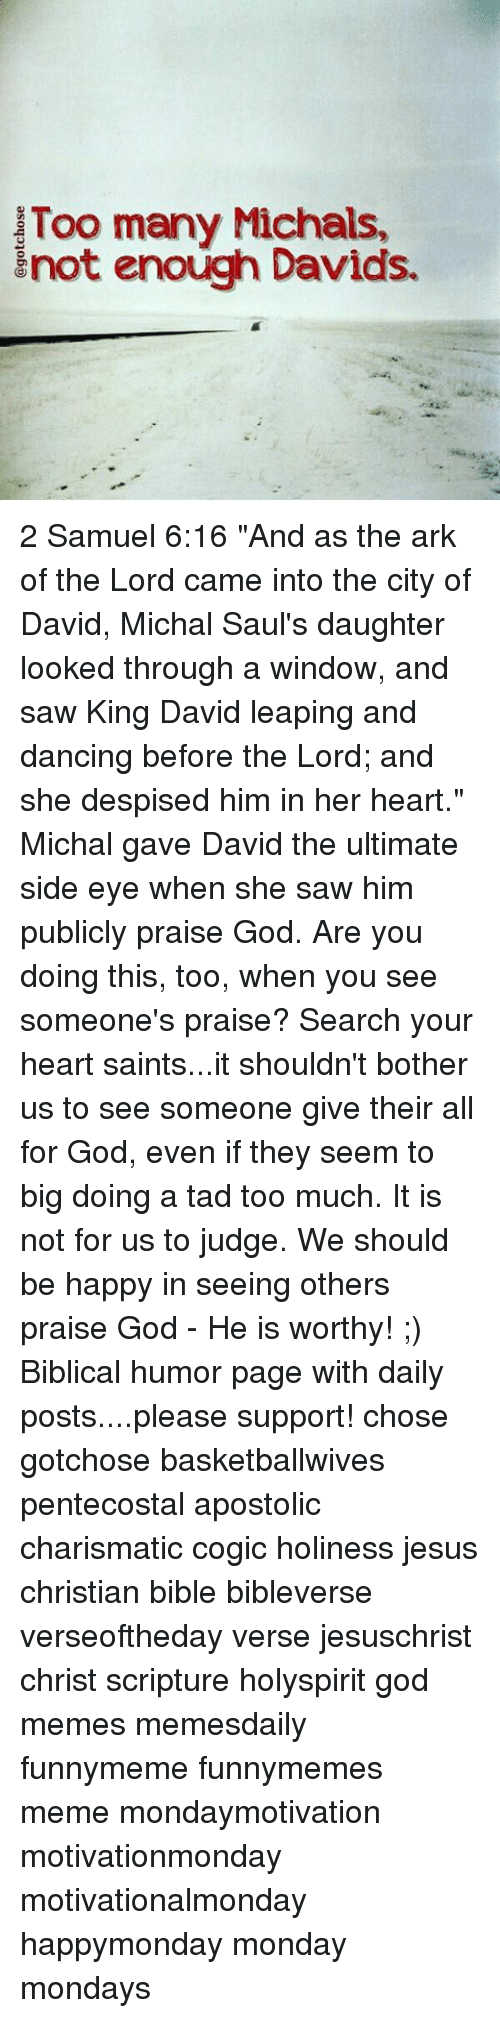 """Dancing, Memes, and Saw: Too many Michals,  not enough Davids. 2 Samuel 6:16 """"And as the ark of the Lord came into the city of David, Michal Saul's daughter looked through a window, and saw King David leaping and dancing before the Lord; and she despised him in her heart."""" Michal gave David the ultimate side eye when she saw him publicly praise God. Are you doing this, too, when you see someone's praise? Search your heart saints...it shouldn't bother us to see someone give their all for God, even if they seem to big doing a tad too much. It is not for us to judge. We should be happy in seeing others praise God - He is worthy! ;) Biblical humor page with daily posts....please support! chose gotchose basketballwives pentecostal apostolic charismatic cogic holiness jesus christian bible bibleverse verseoftheday verse jesuschrist christ scripture holyspirit god memes memesdaily funnymeme funnymemes meme mondaymotivation motivationmonday motivationalmonday happymonday monday mondays"""